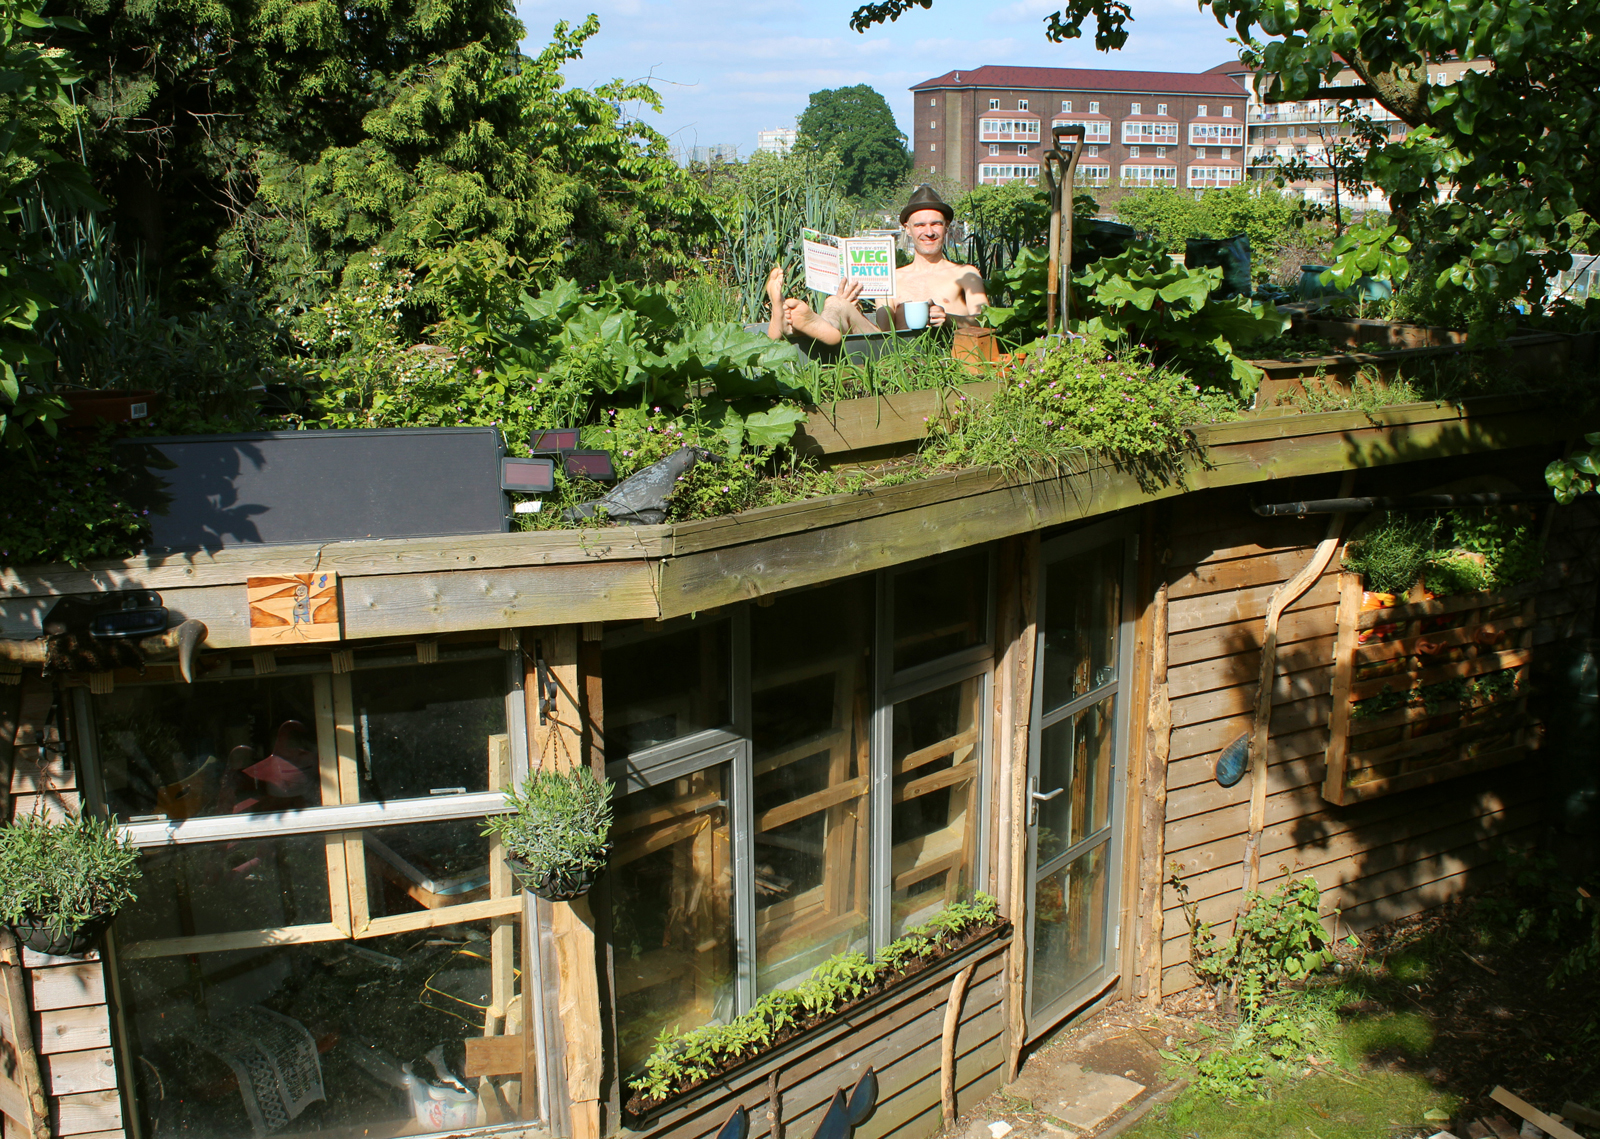 Joel Bird's  Allotment Roof Art Shed complete with him and his hat! This would suit me very well! Joel is 'featured artist' of The Architects Shed. Why?  Read here !